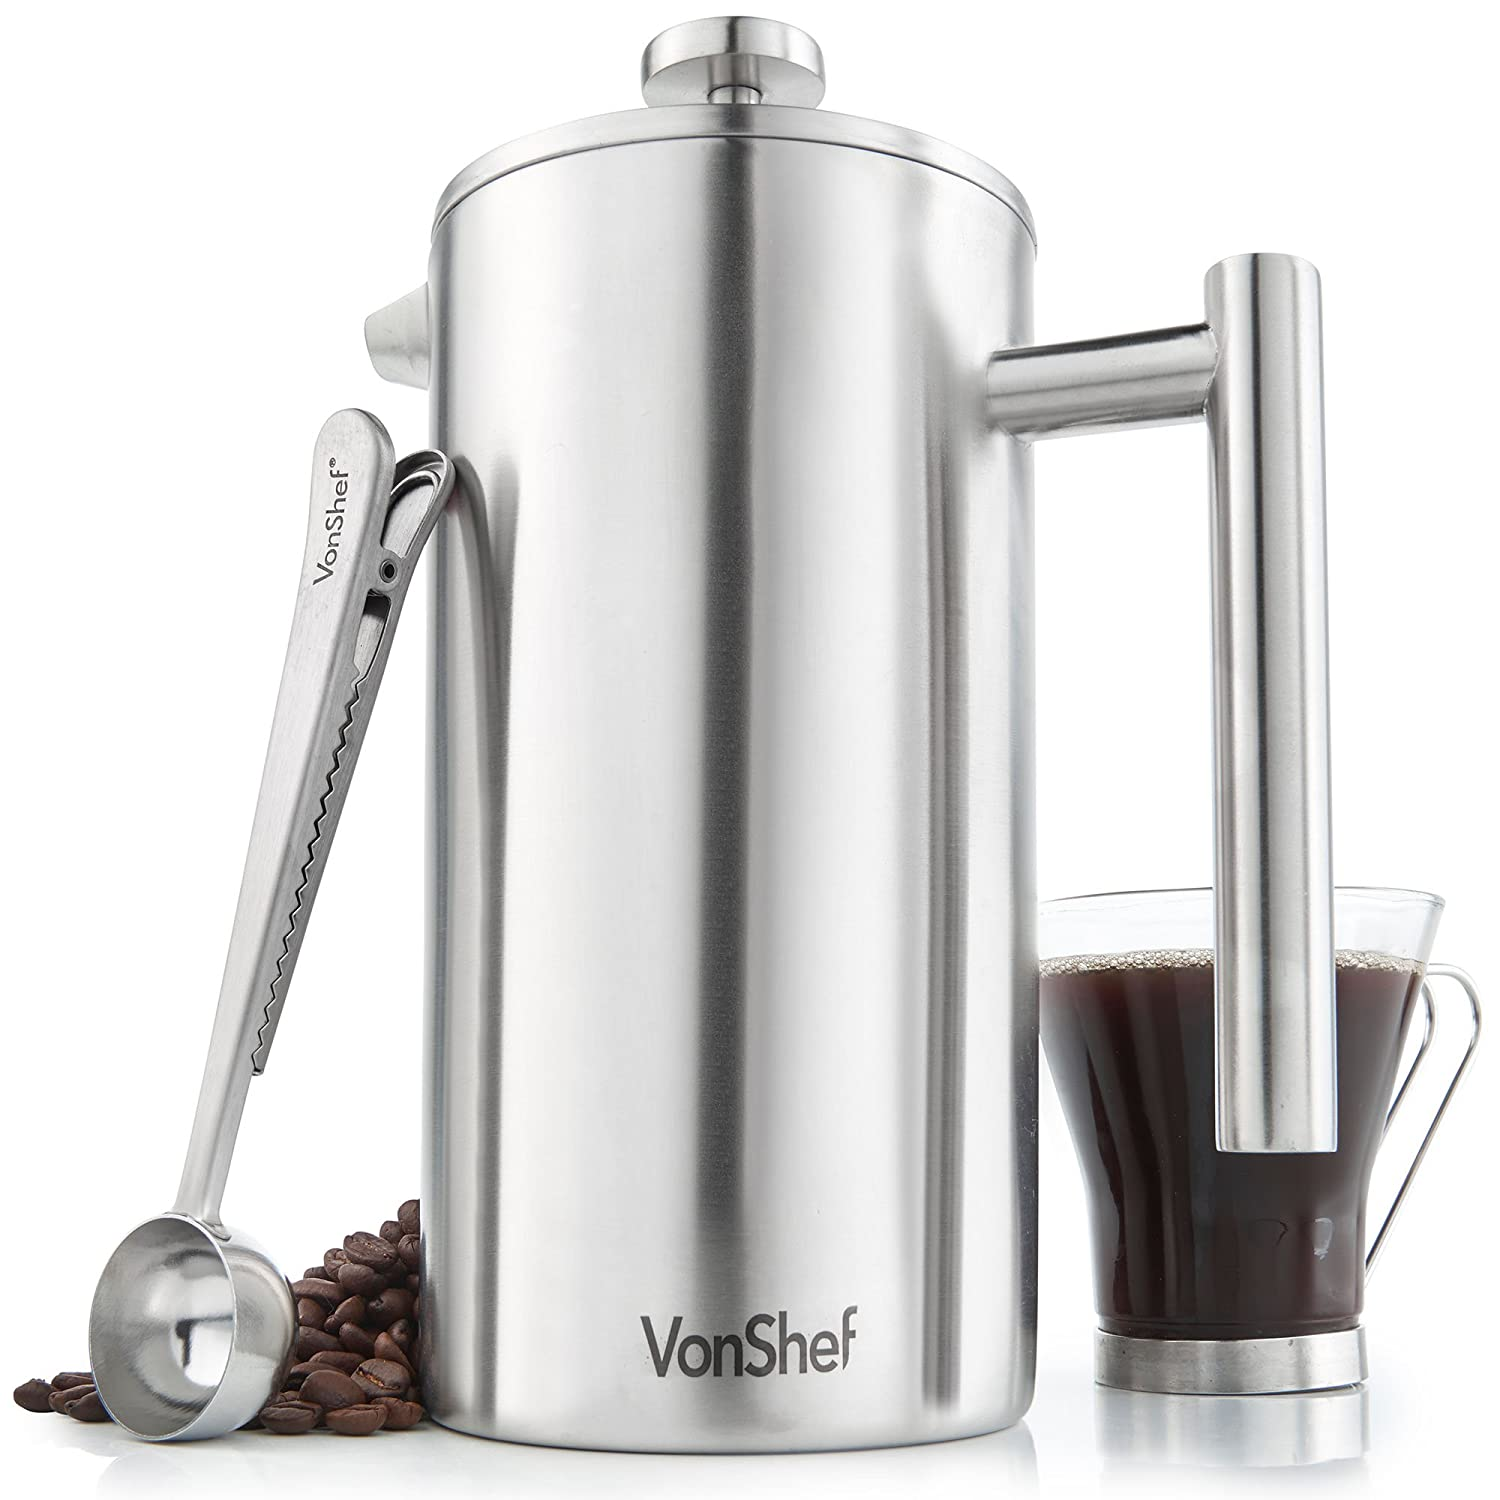 VonShef Cafetiere 3 Cup Stainless Steel Double Walled Satin Brushed Coffee Filter WITH Coffee Measuring Spoon and Bag Sealing Clip 350ml 07/265